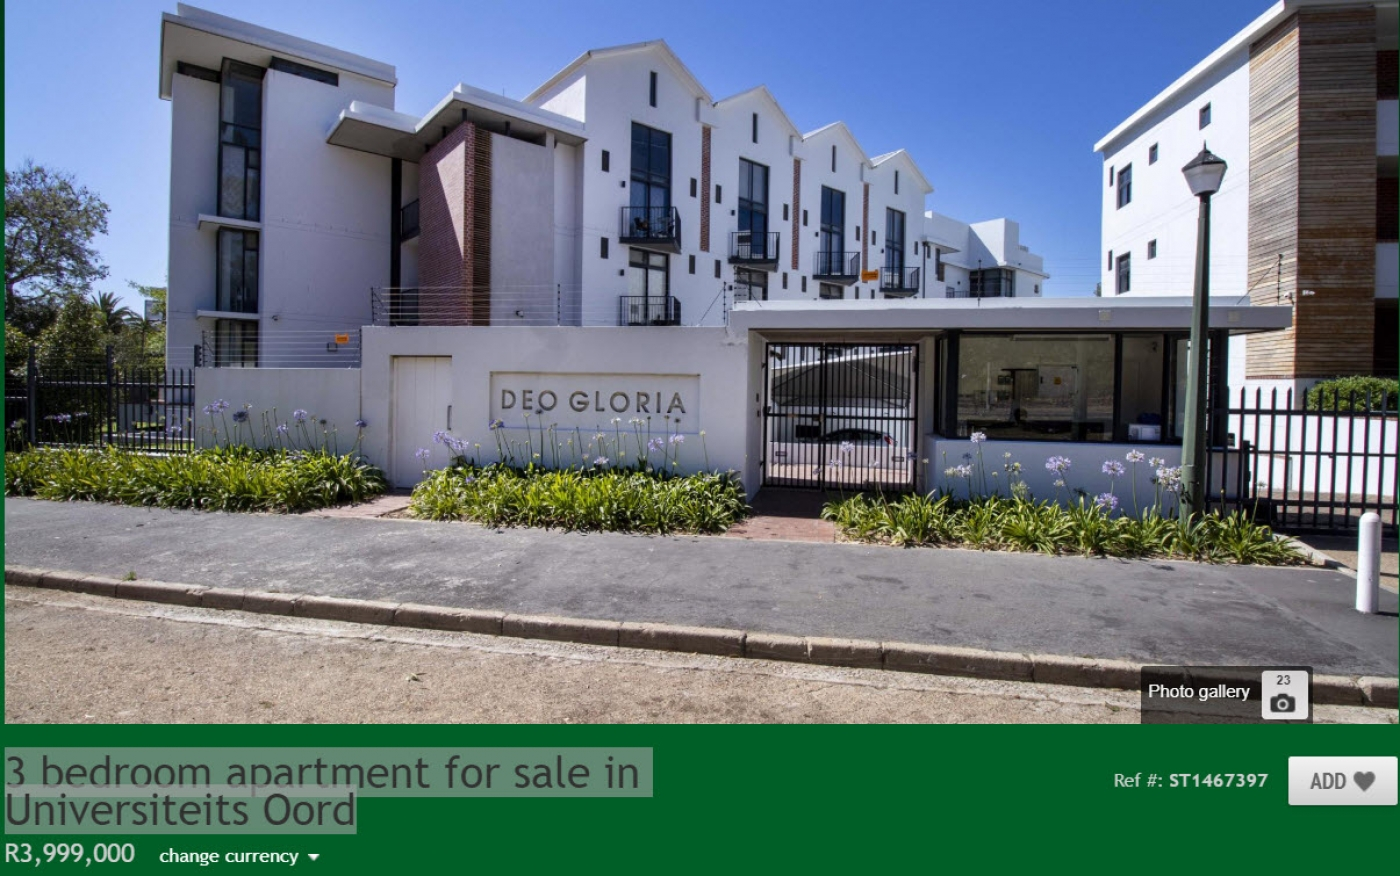 3 bedroom apartment for sale in Universiteits Oord